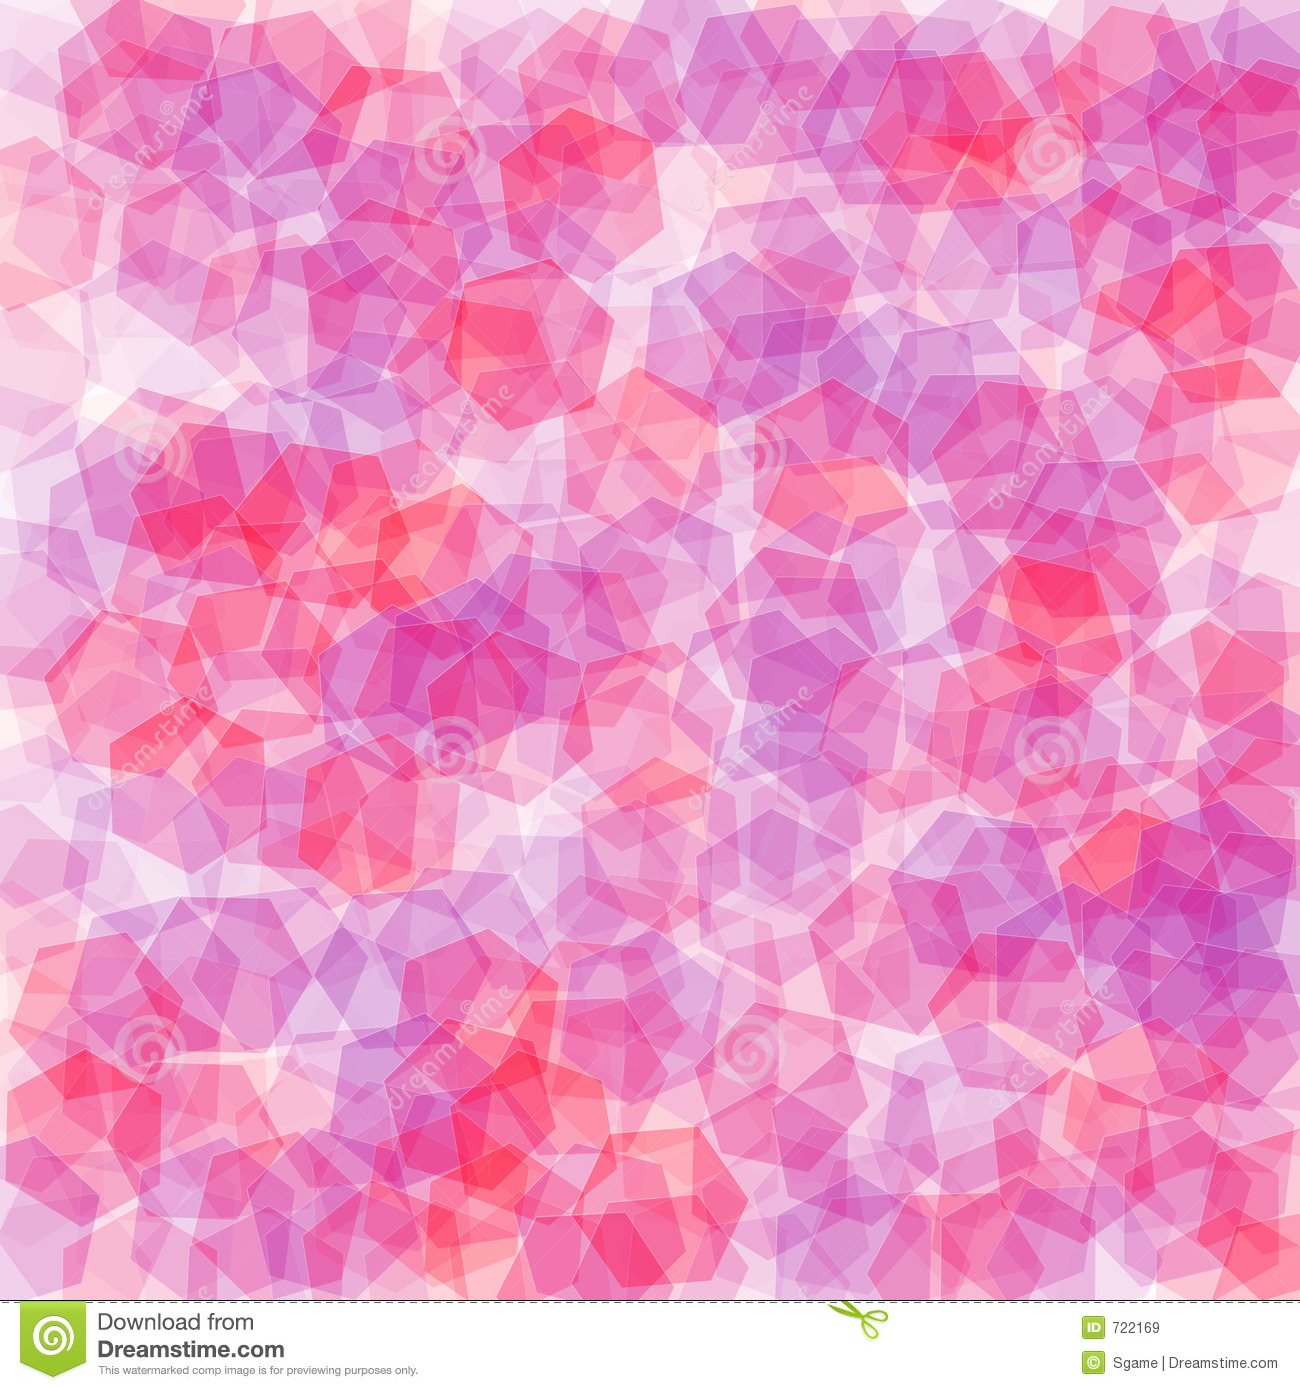 Pink Diamond Wallpaper: Diamond Texture Royalty Free Stock Images